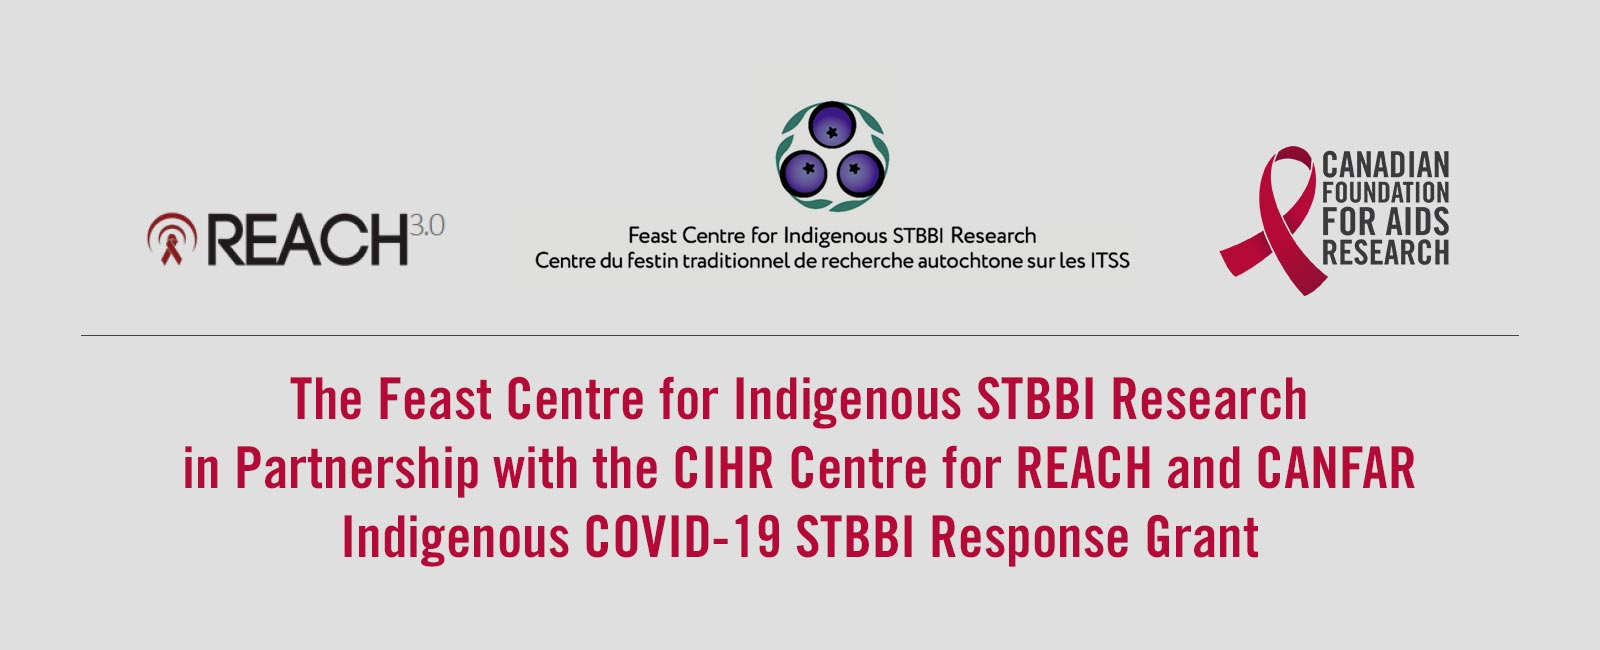 The Feast Centre for Indigenous STBBI Research in Partnership with the CIHR Centre for REACH and CANFAR Indigenous COVID-19 STBBI Response Grant